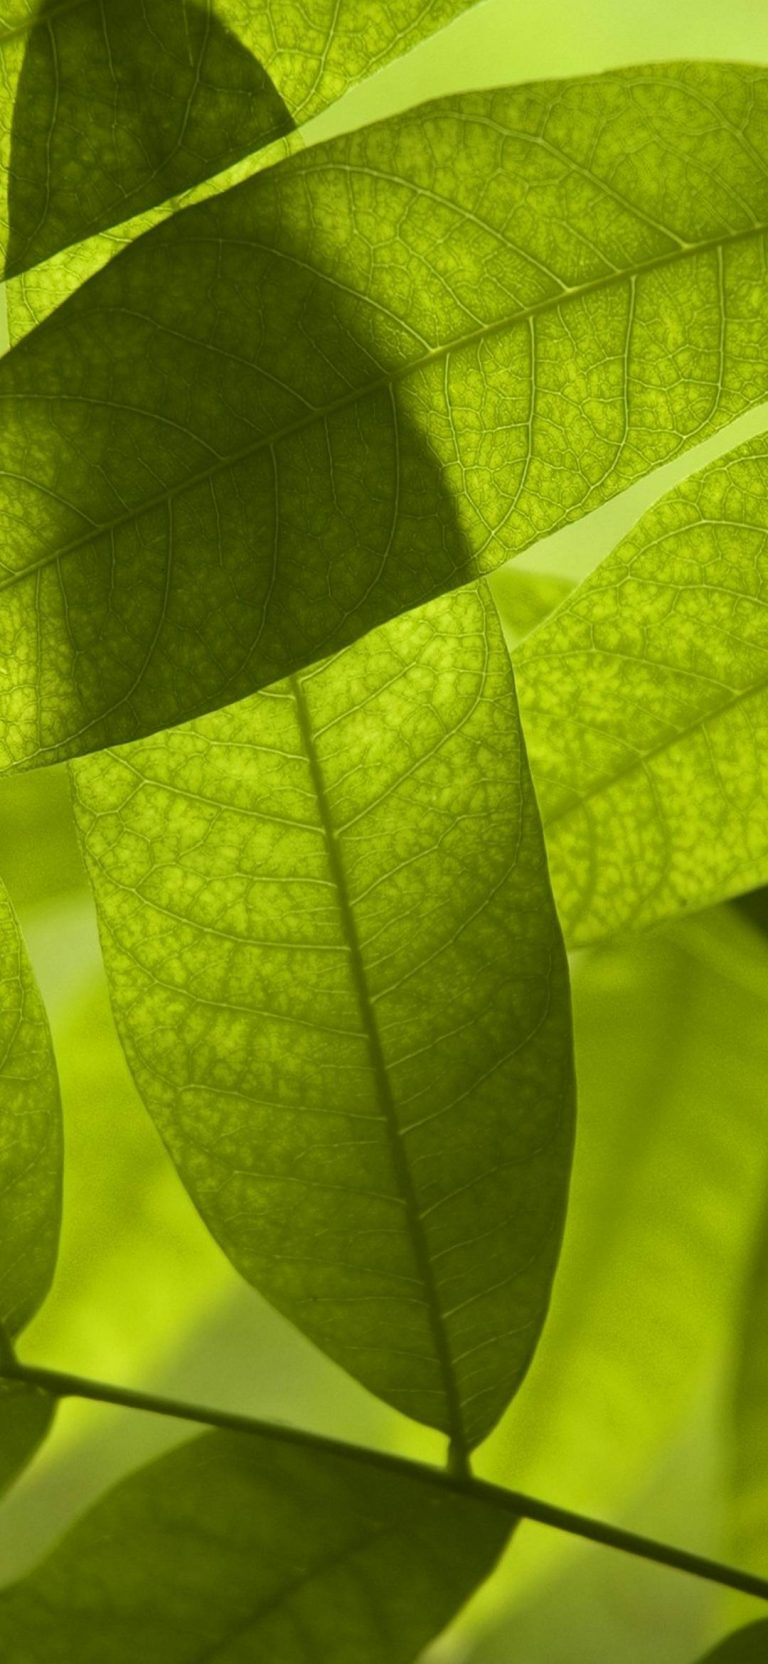 Nature Leaves Digital Art Macro 1080x2340 768x1664